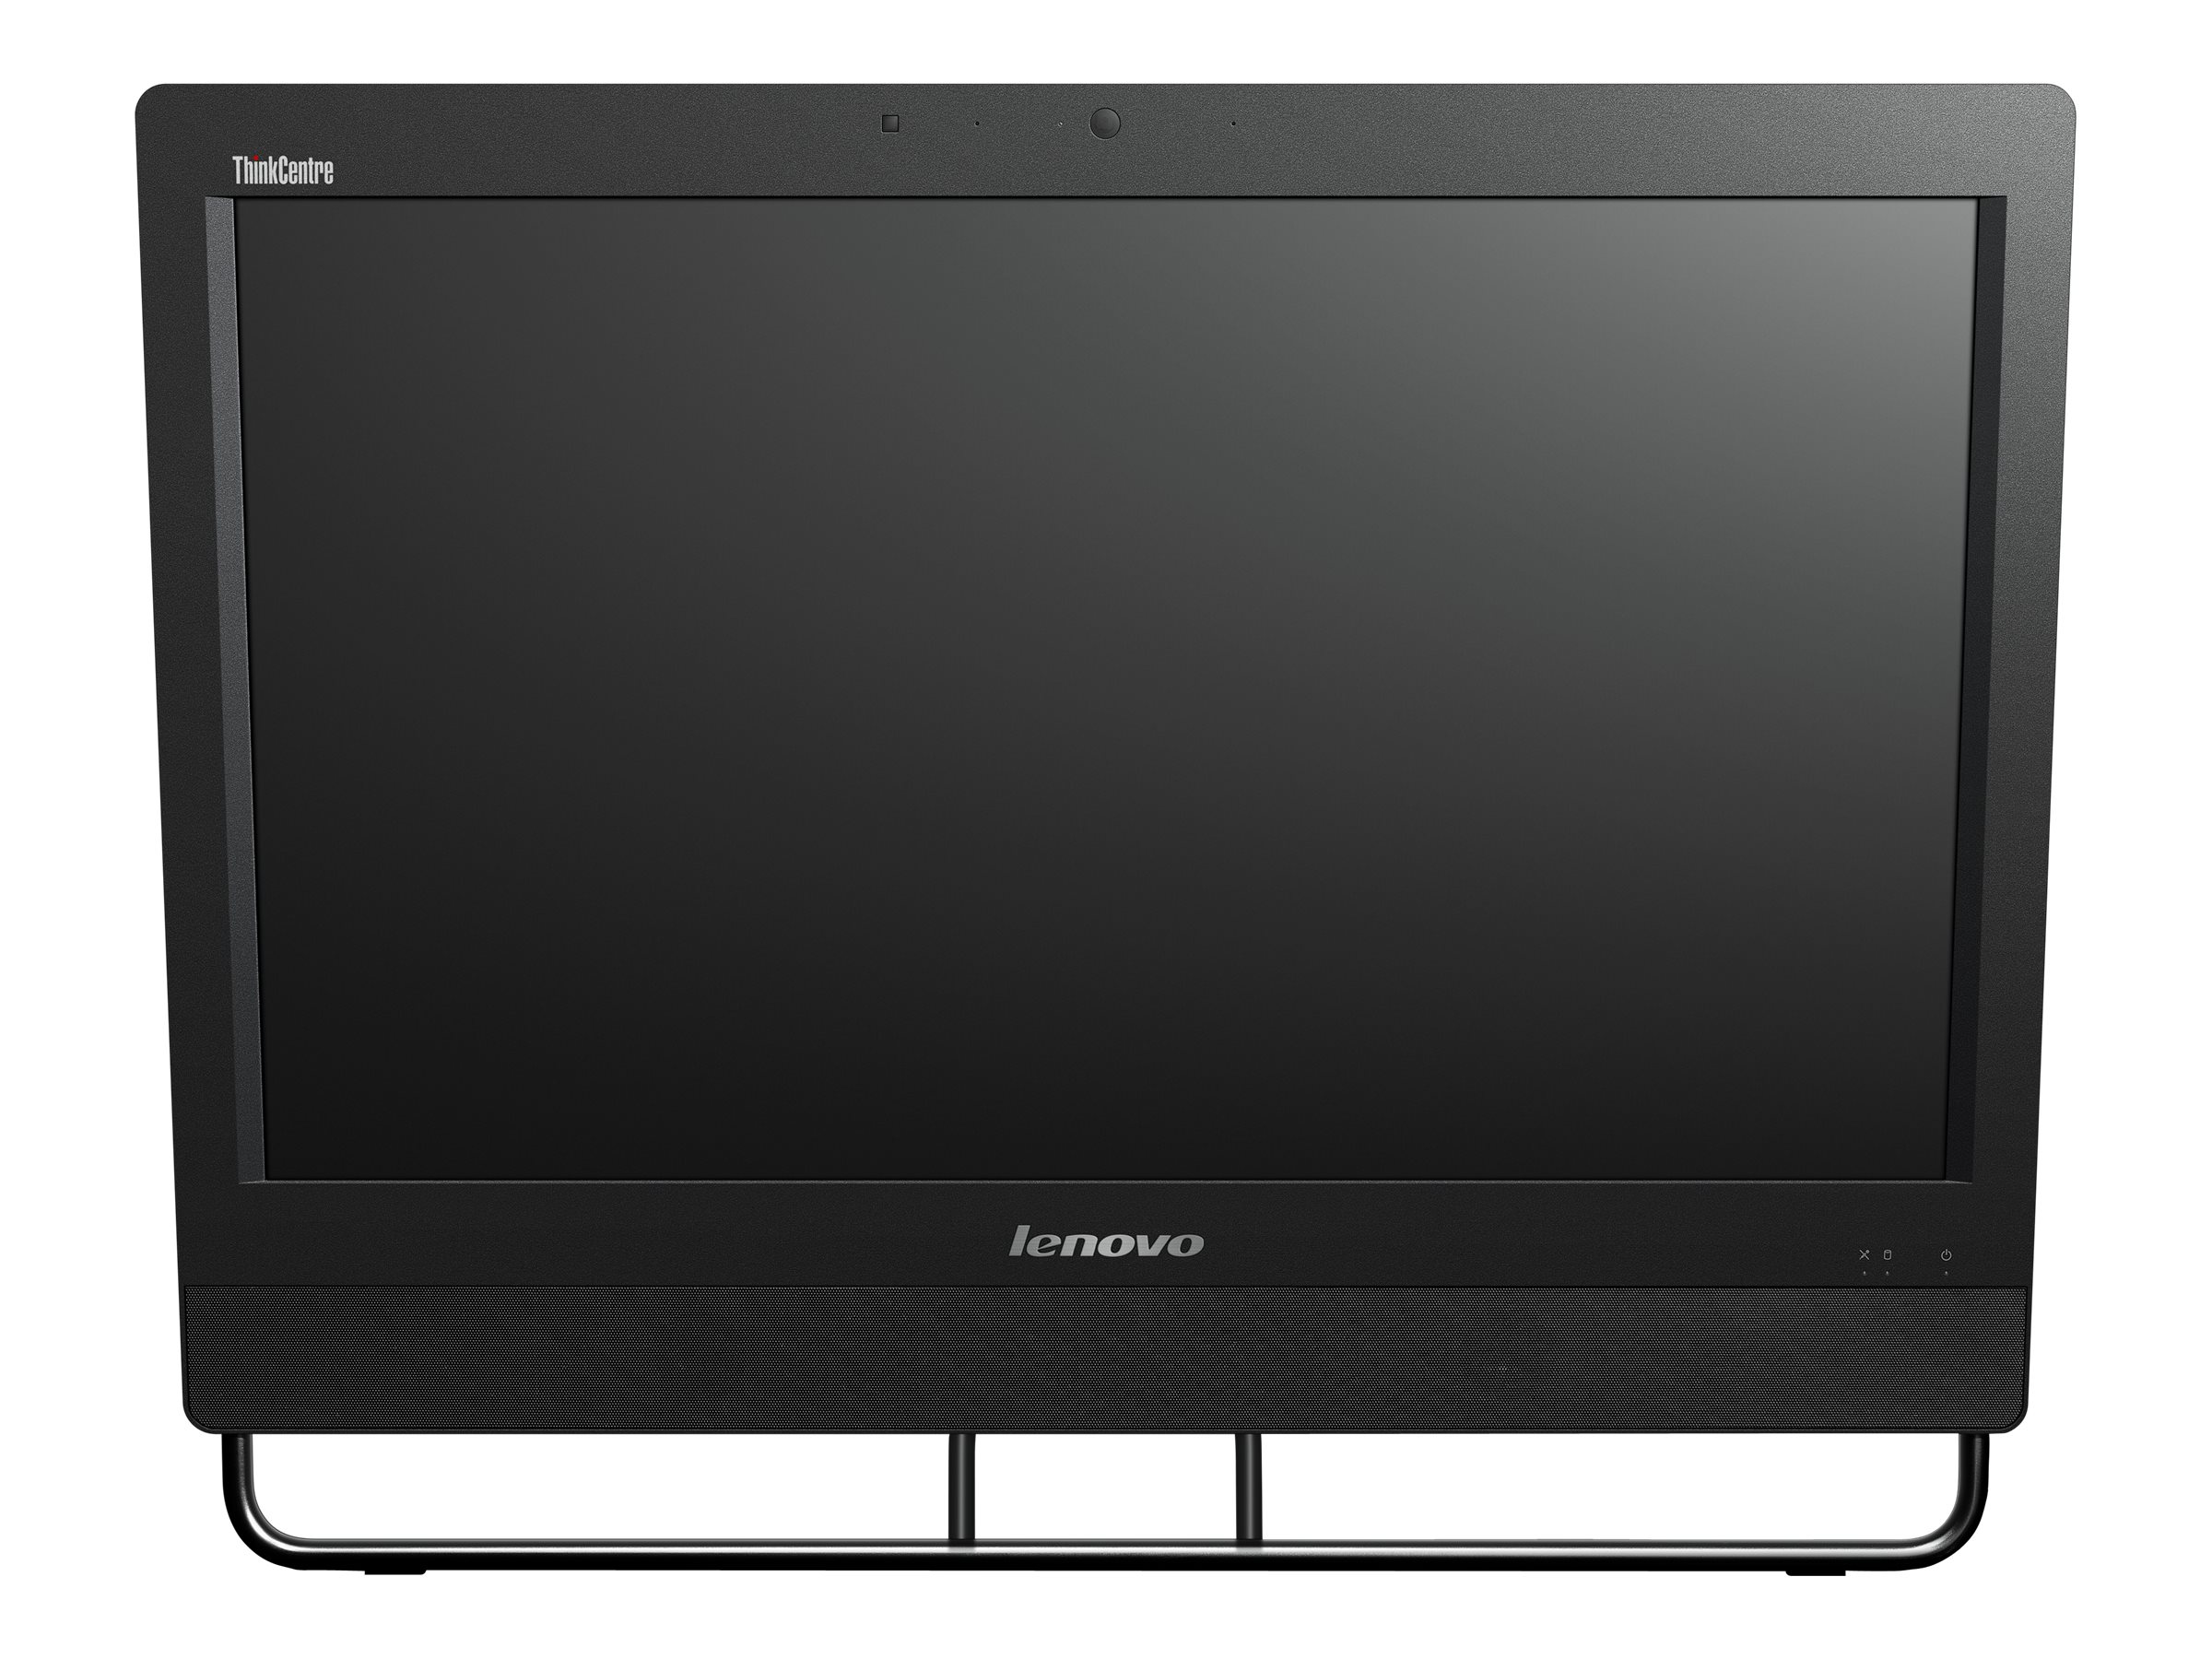 Lenovo TopSeller ThinkCentre M93z AIO Core i5-4570S 2.9GHz 4GB 500GB DVD+RW bgn BT WC 23 FHD MT W8.1P64, 10AD0028US, 16792698, Desktops - All-in-One